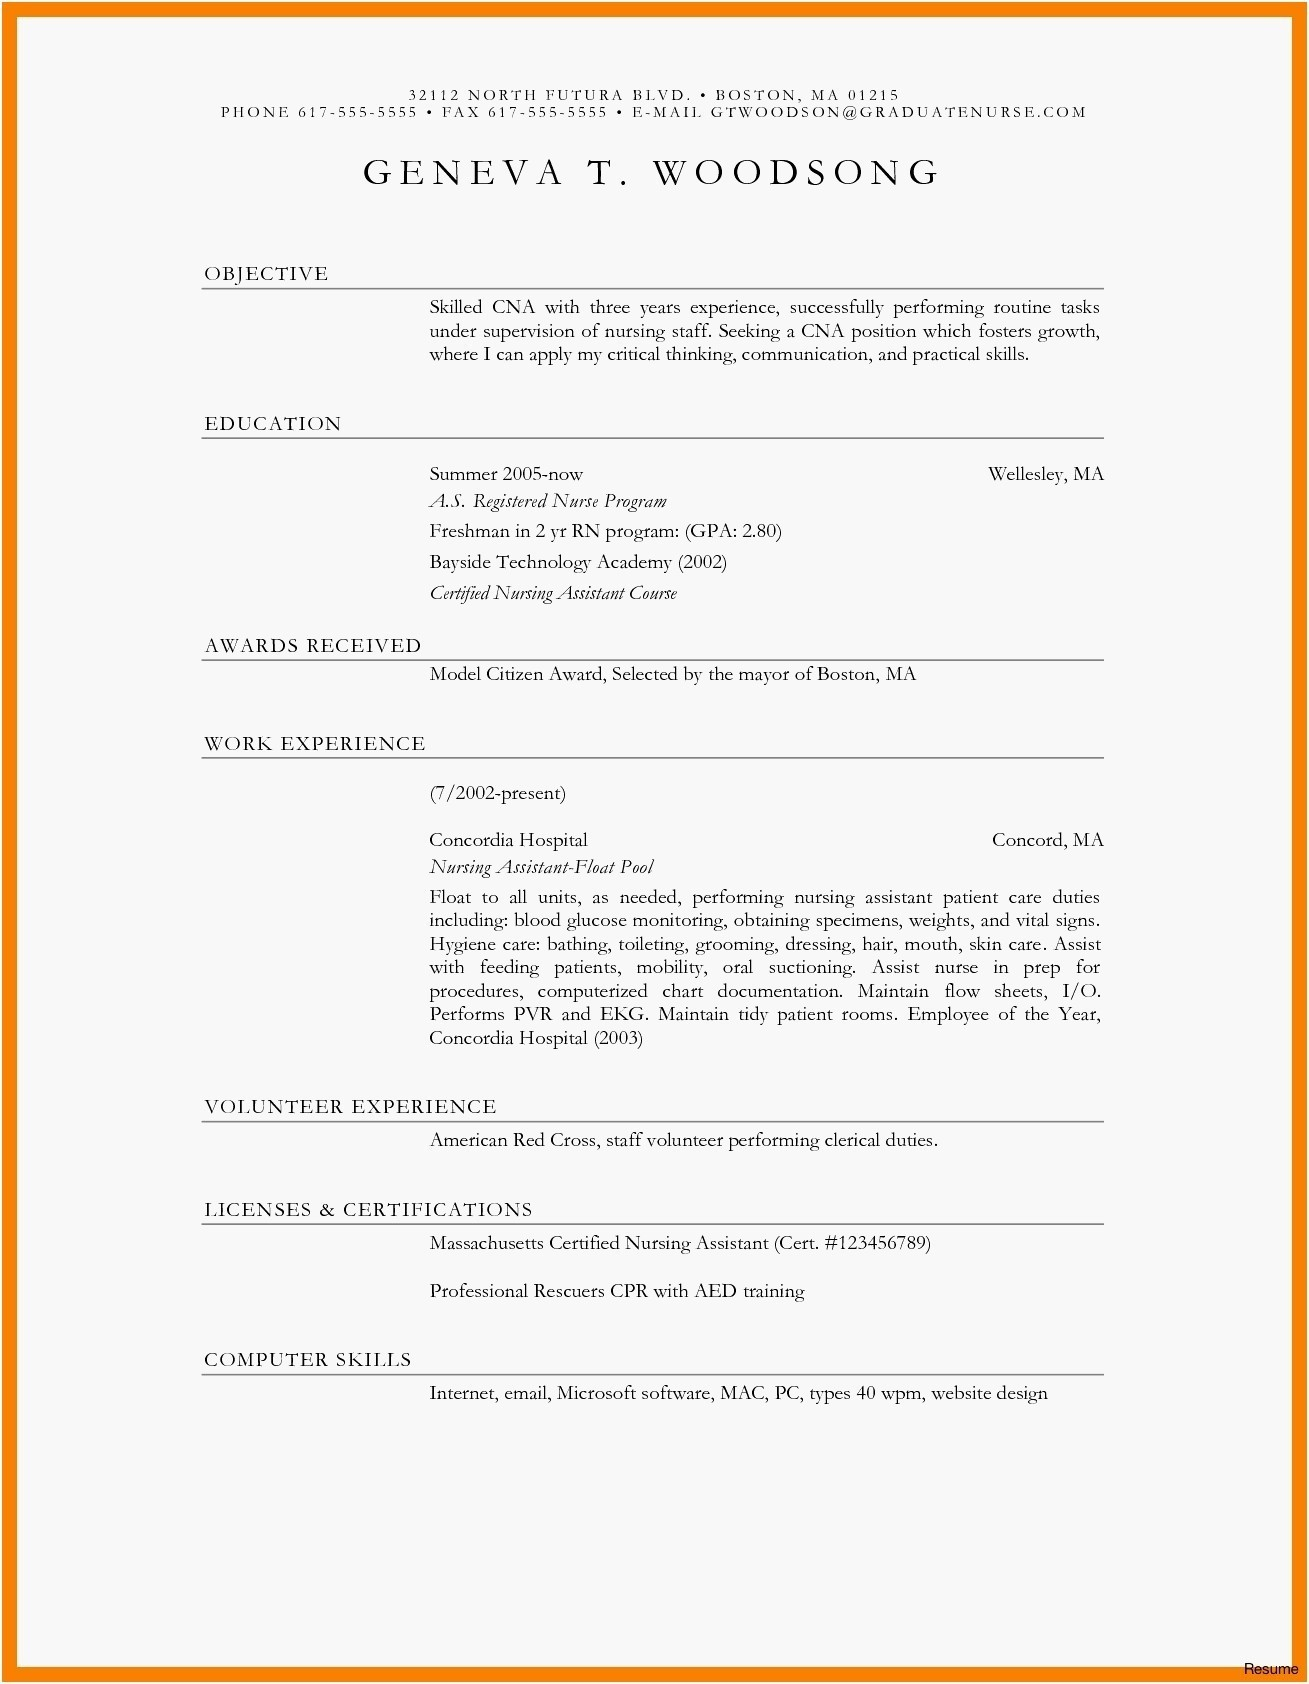 Cyber Security Resume - 20 Entry Level Cyber Security Resume